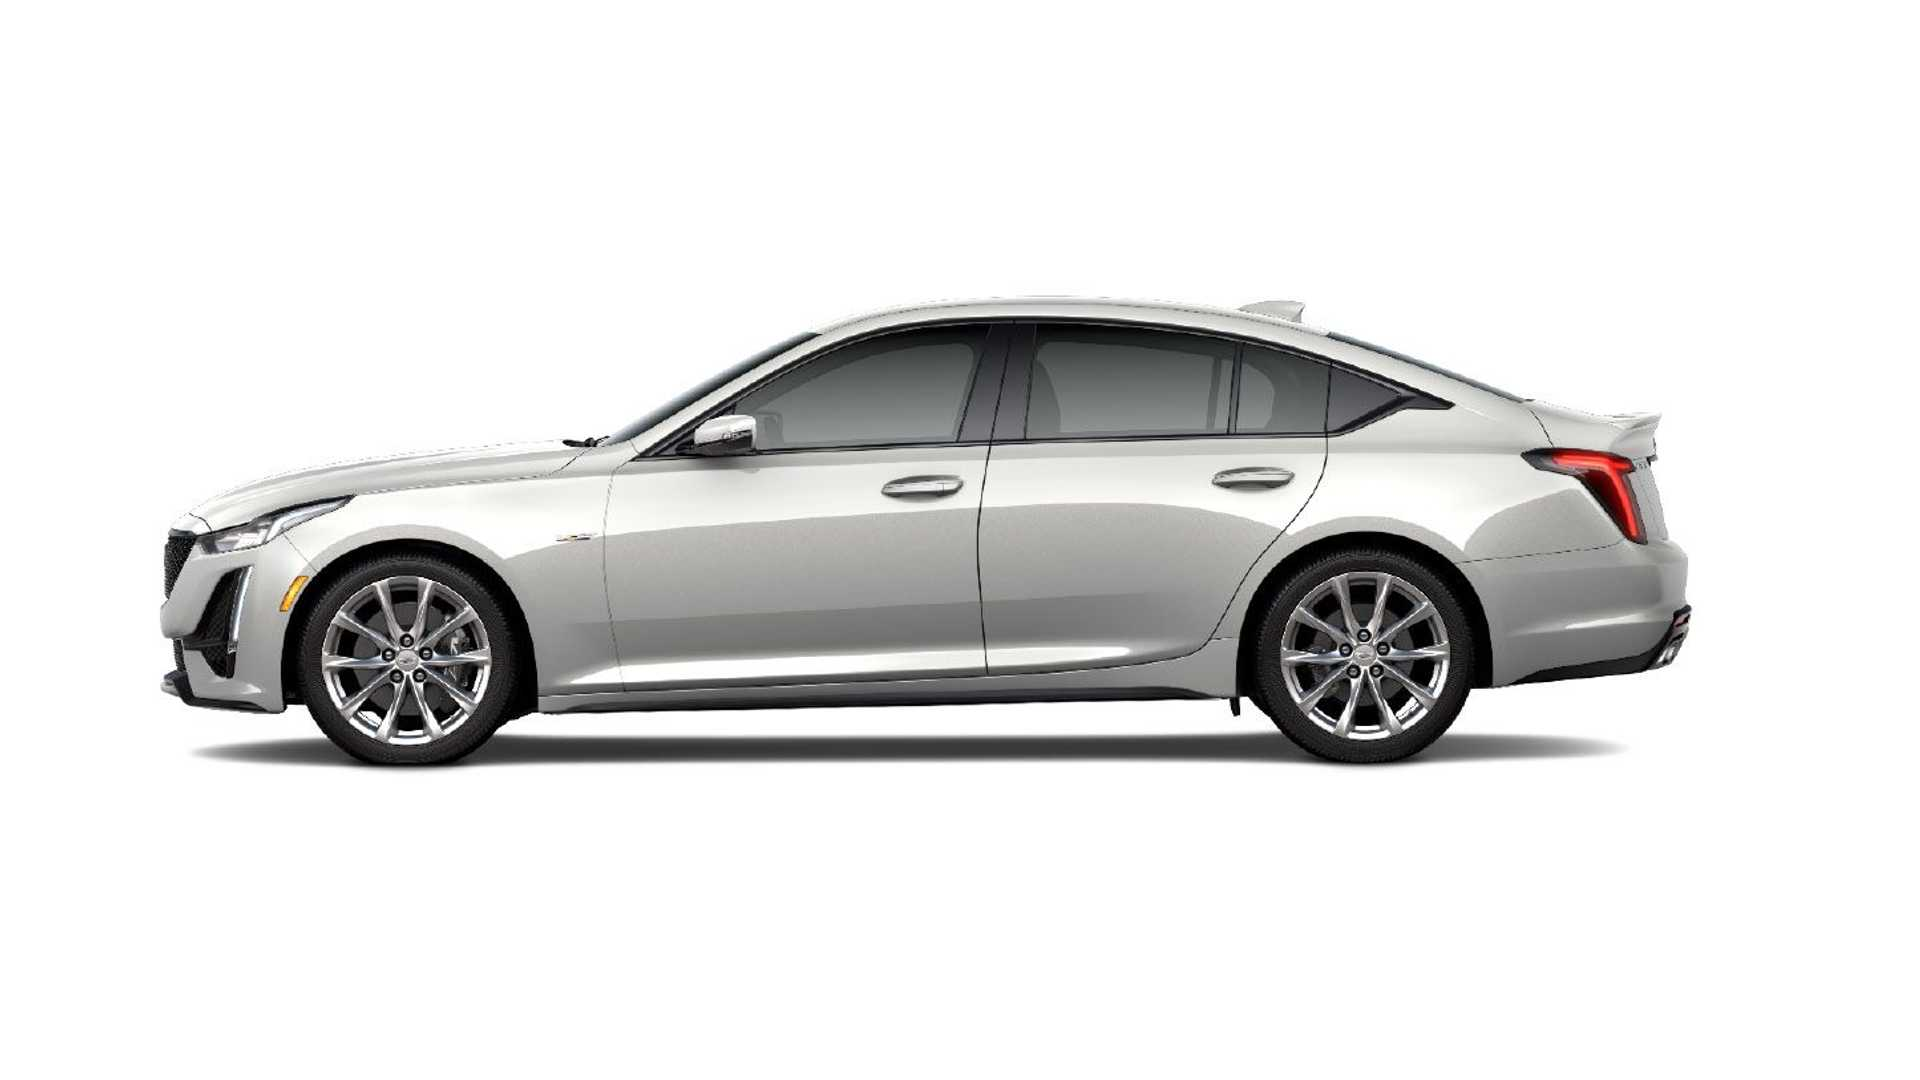 2021 Cadillac CT4 and CT5 Search for the Diamond Sky, Find ...